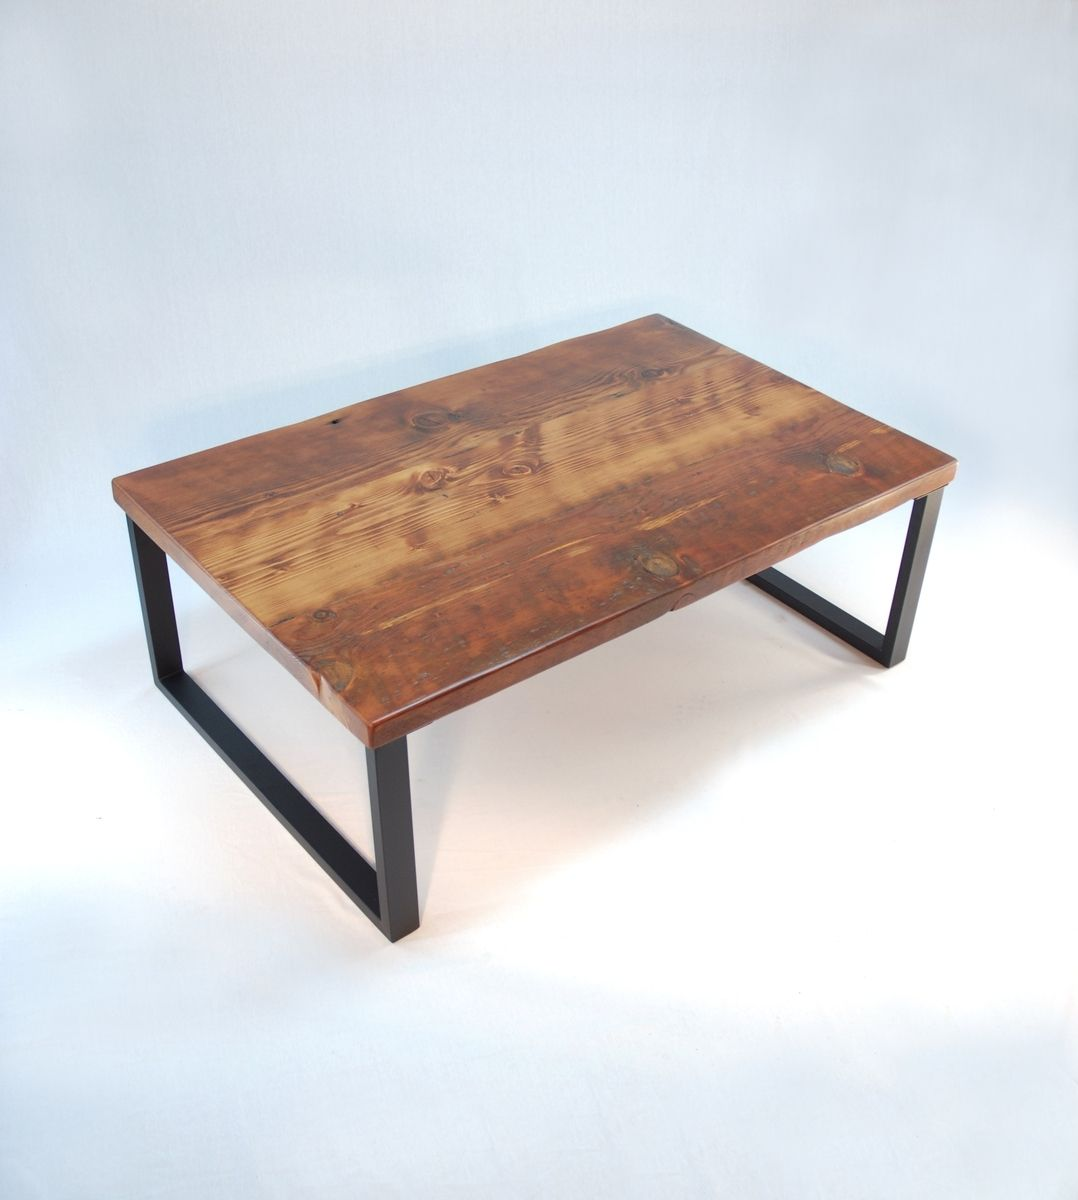 Custom Made Redmond Rustic-Modern Coffee Table - Handmade Redmond Rustic-Modern Coffee Table By Jonathan January